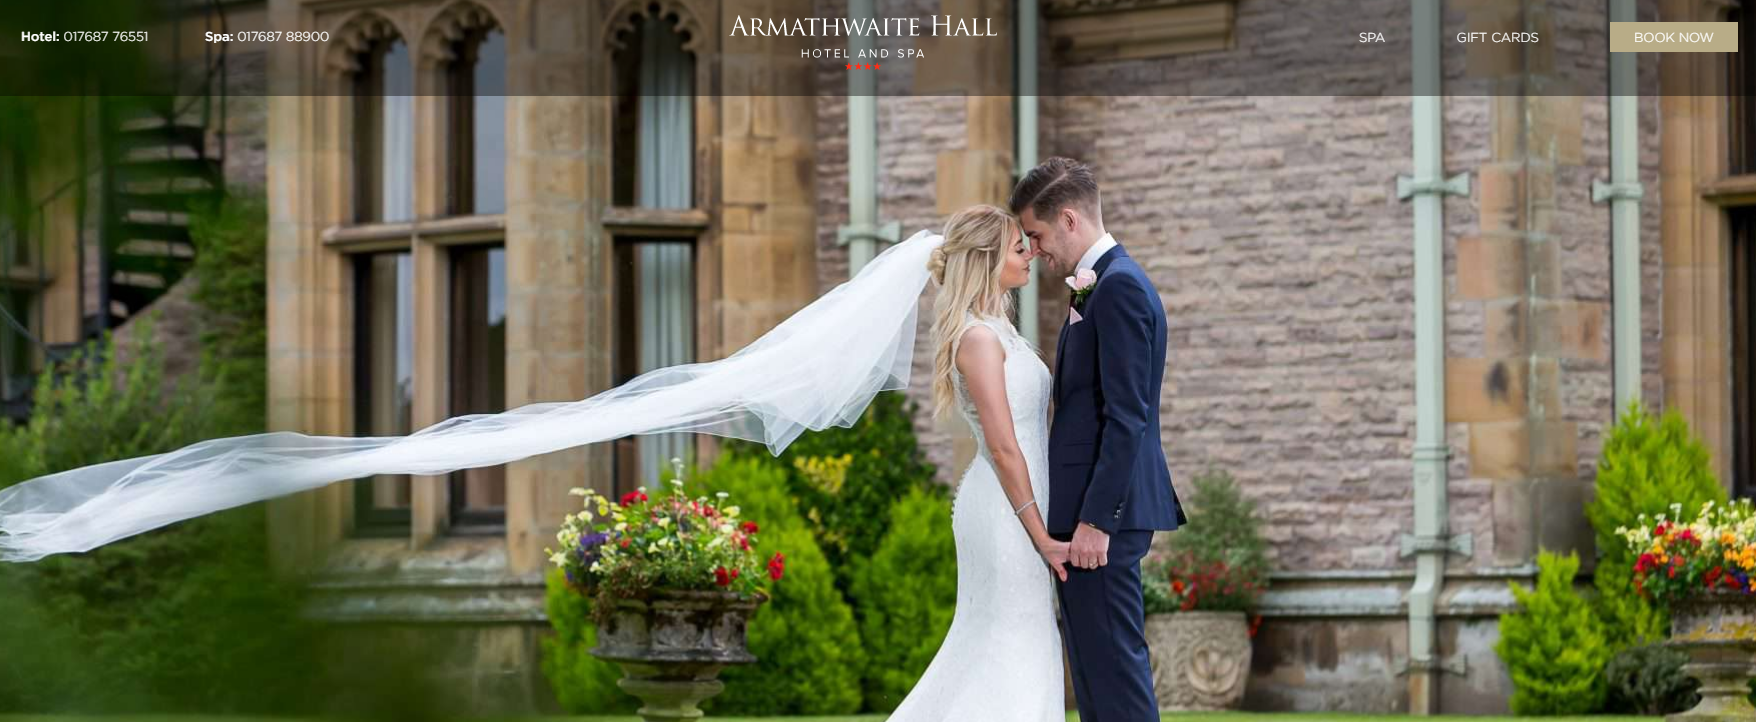 Armathwaite-Hall-Hotel-Wedding-Photographer-Lake-District